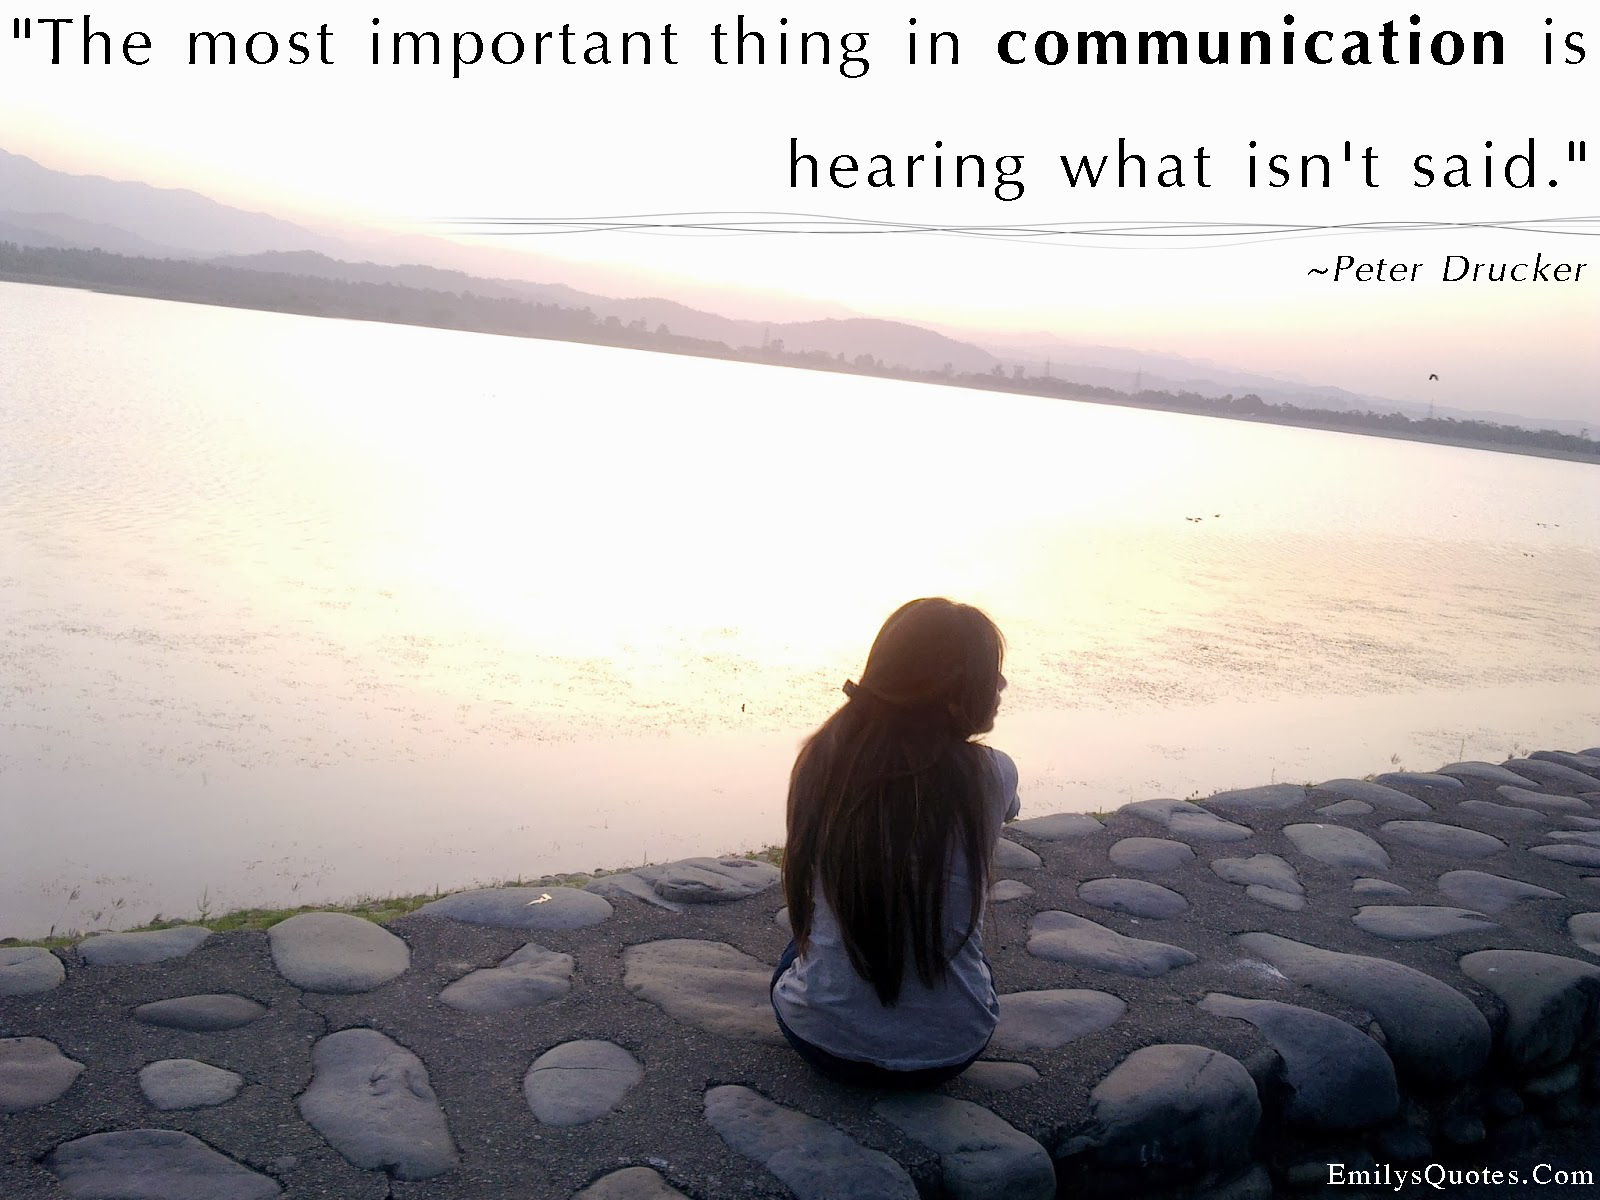 EmilysQuotes.Com - important, communication, hearing, unsaid, feelings, understanding, Peter Drucker